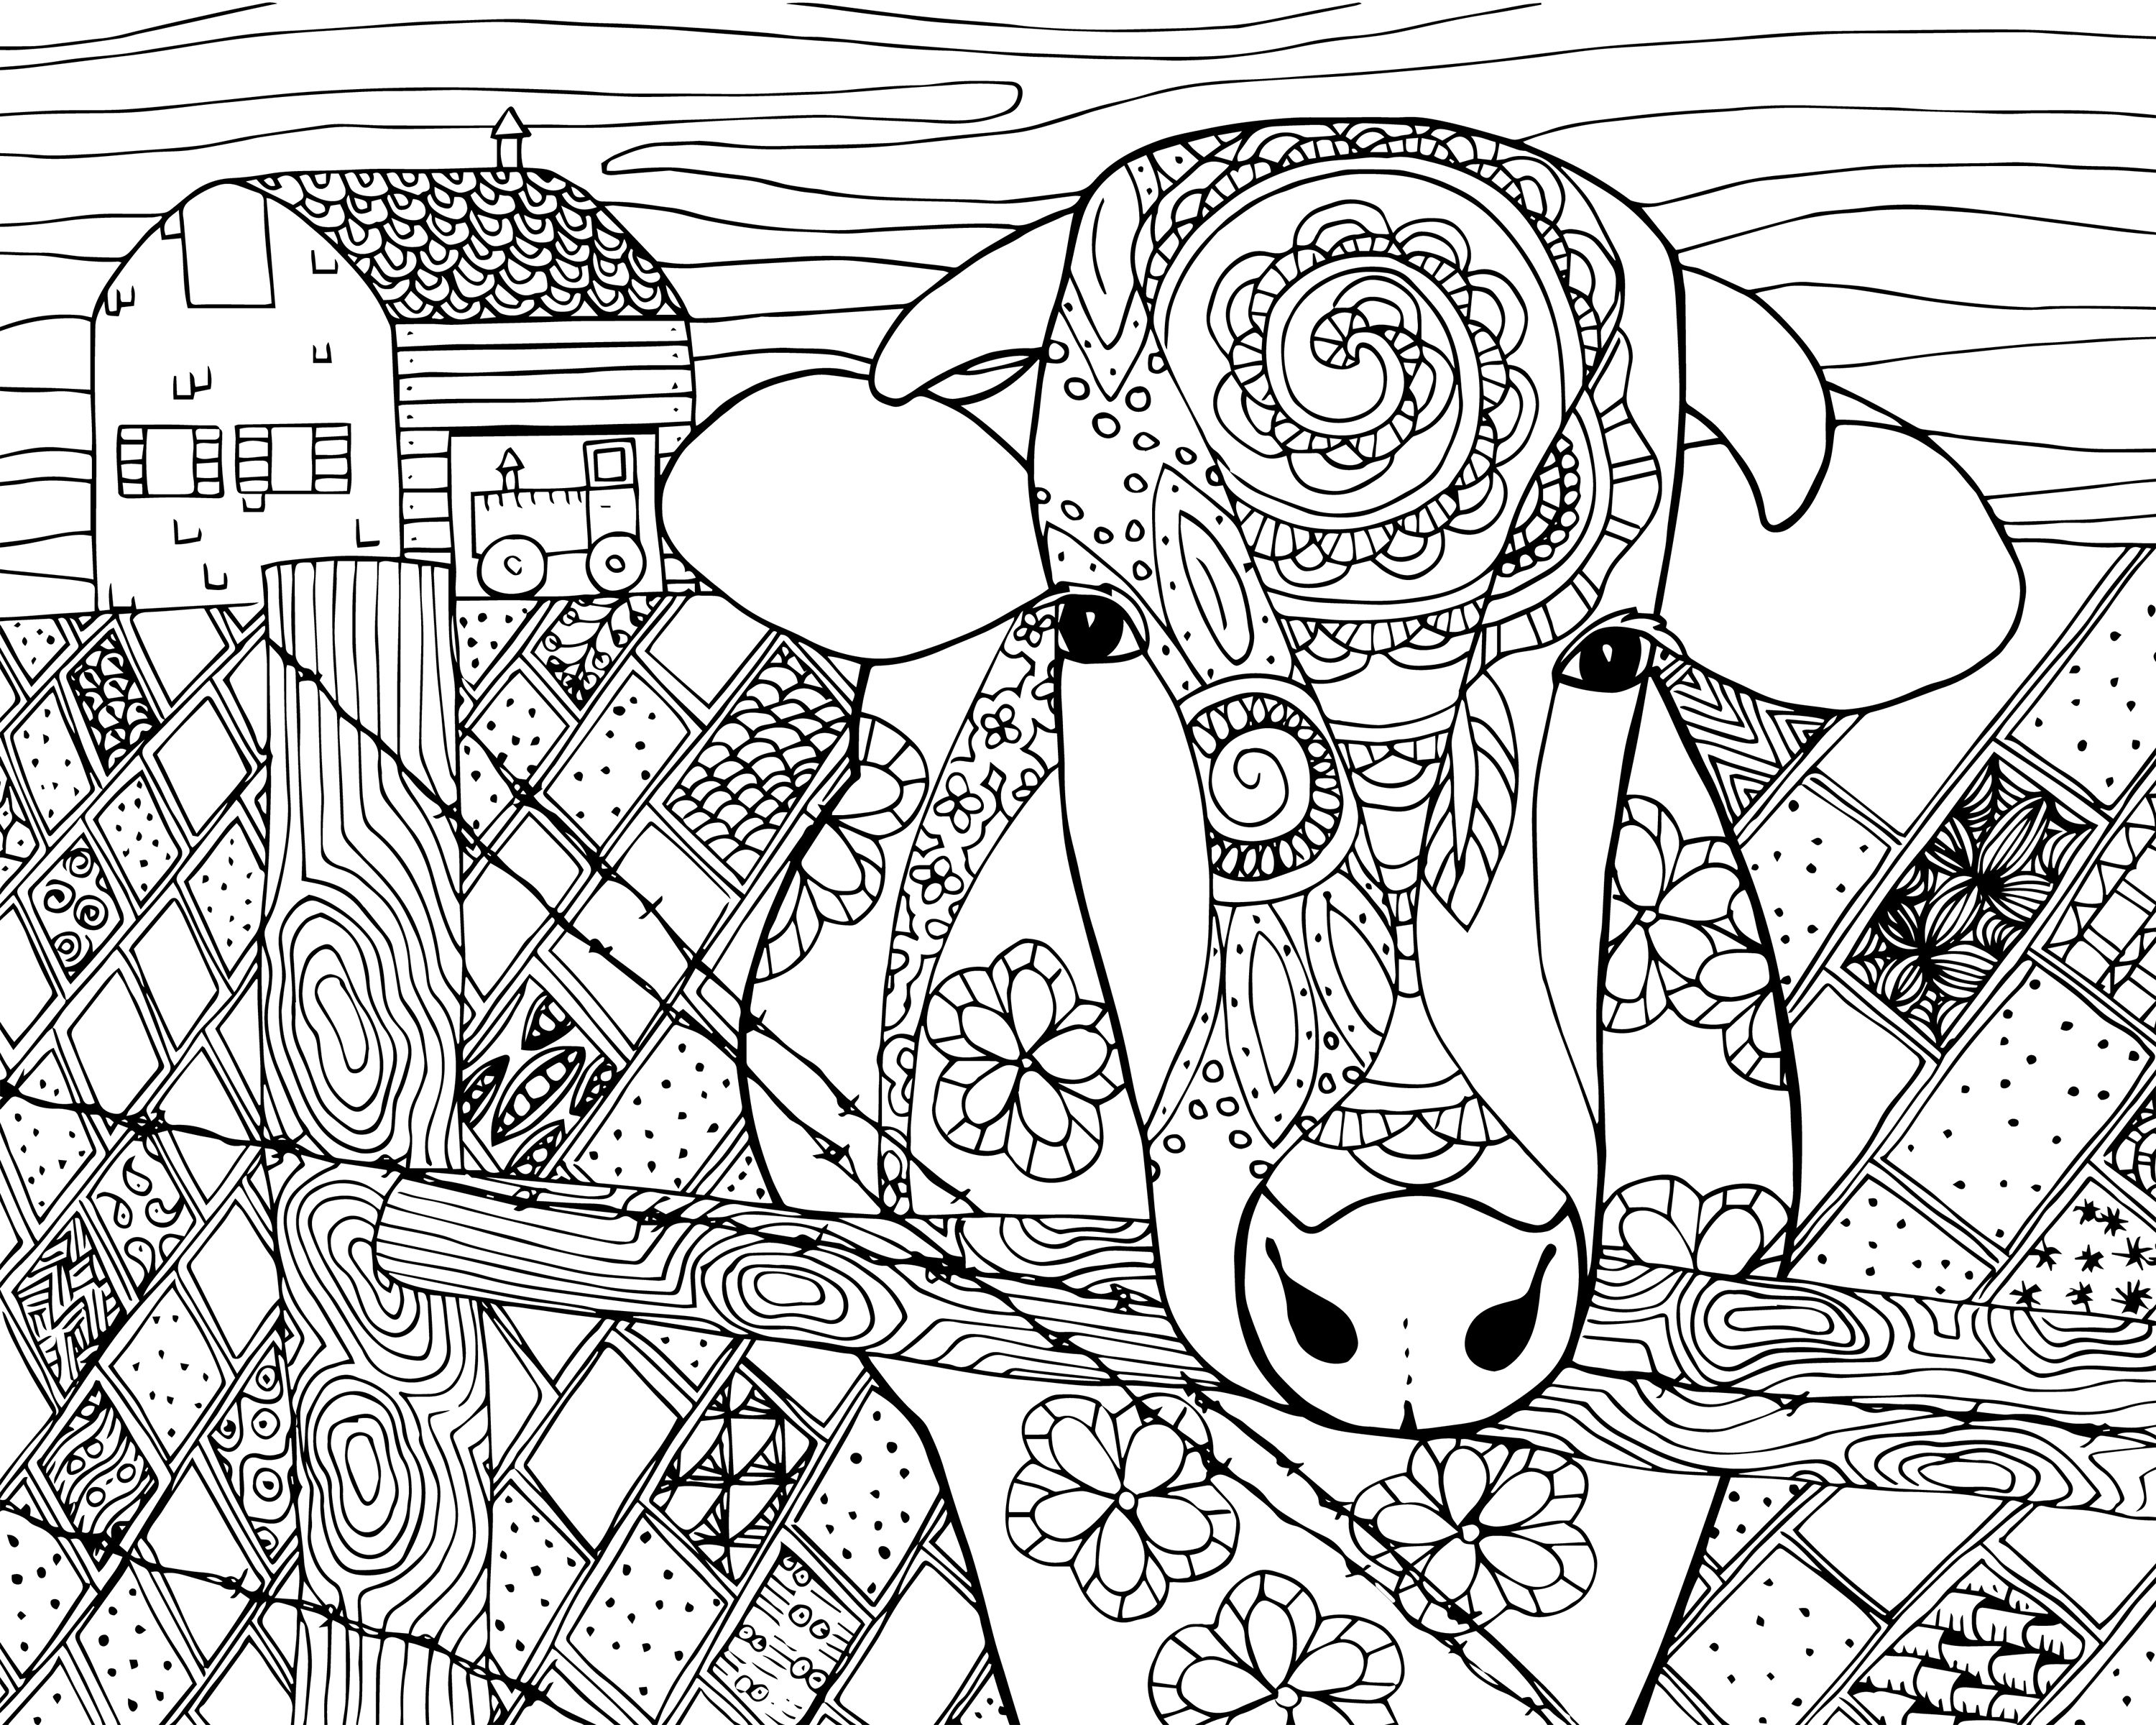 Free coloring pages for adults - Free Coloring Pages Adults Art And Abstract Category Image 62